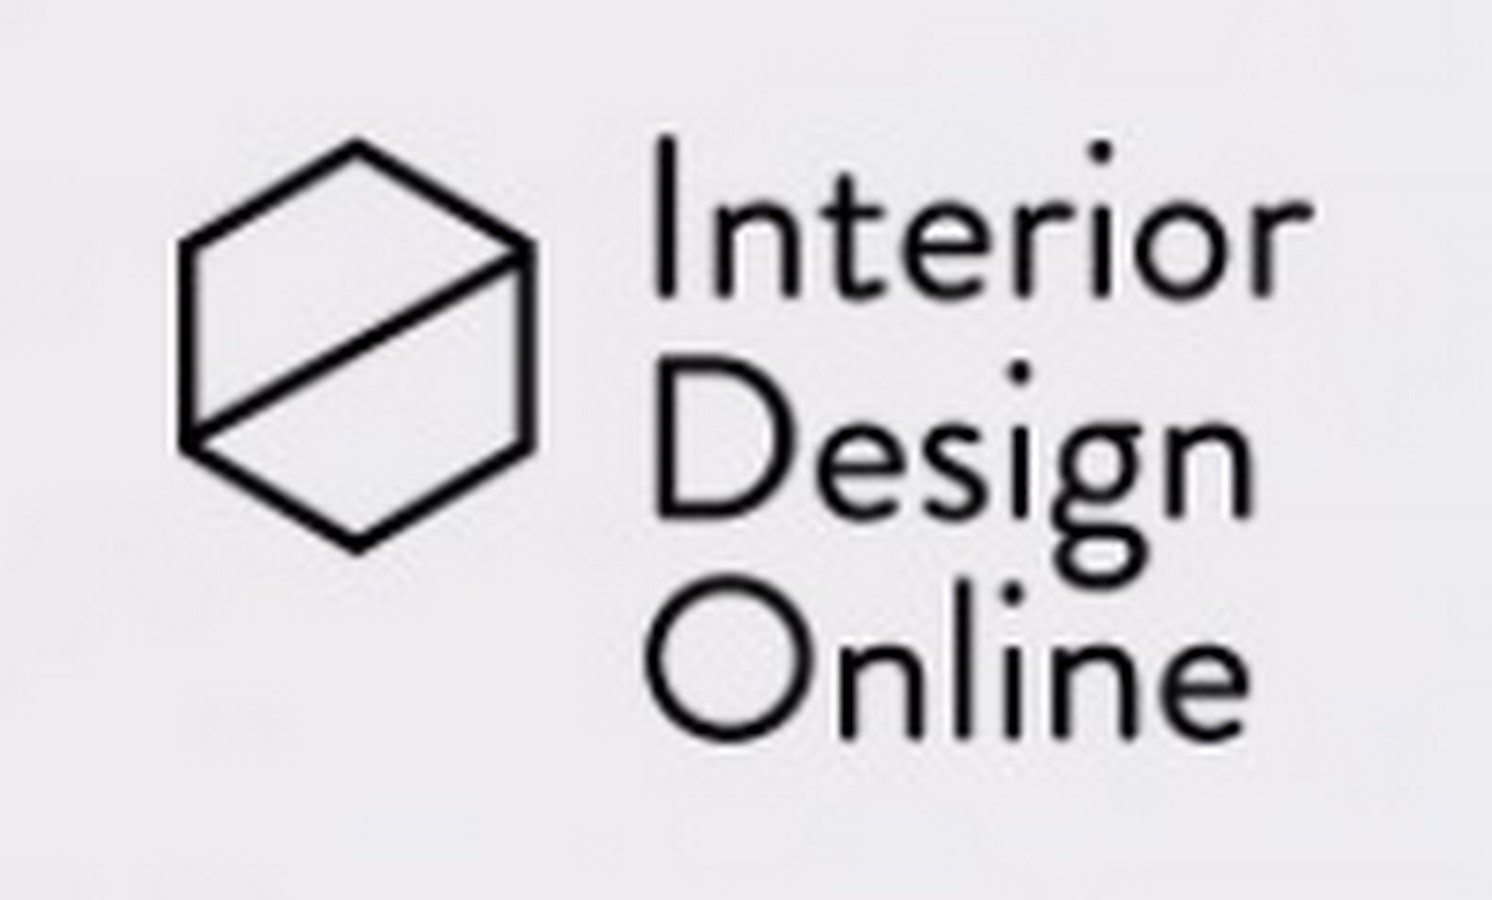 10 Interior Design courses available online - sheet7